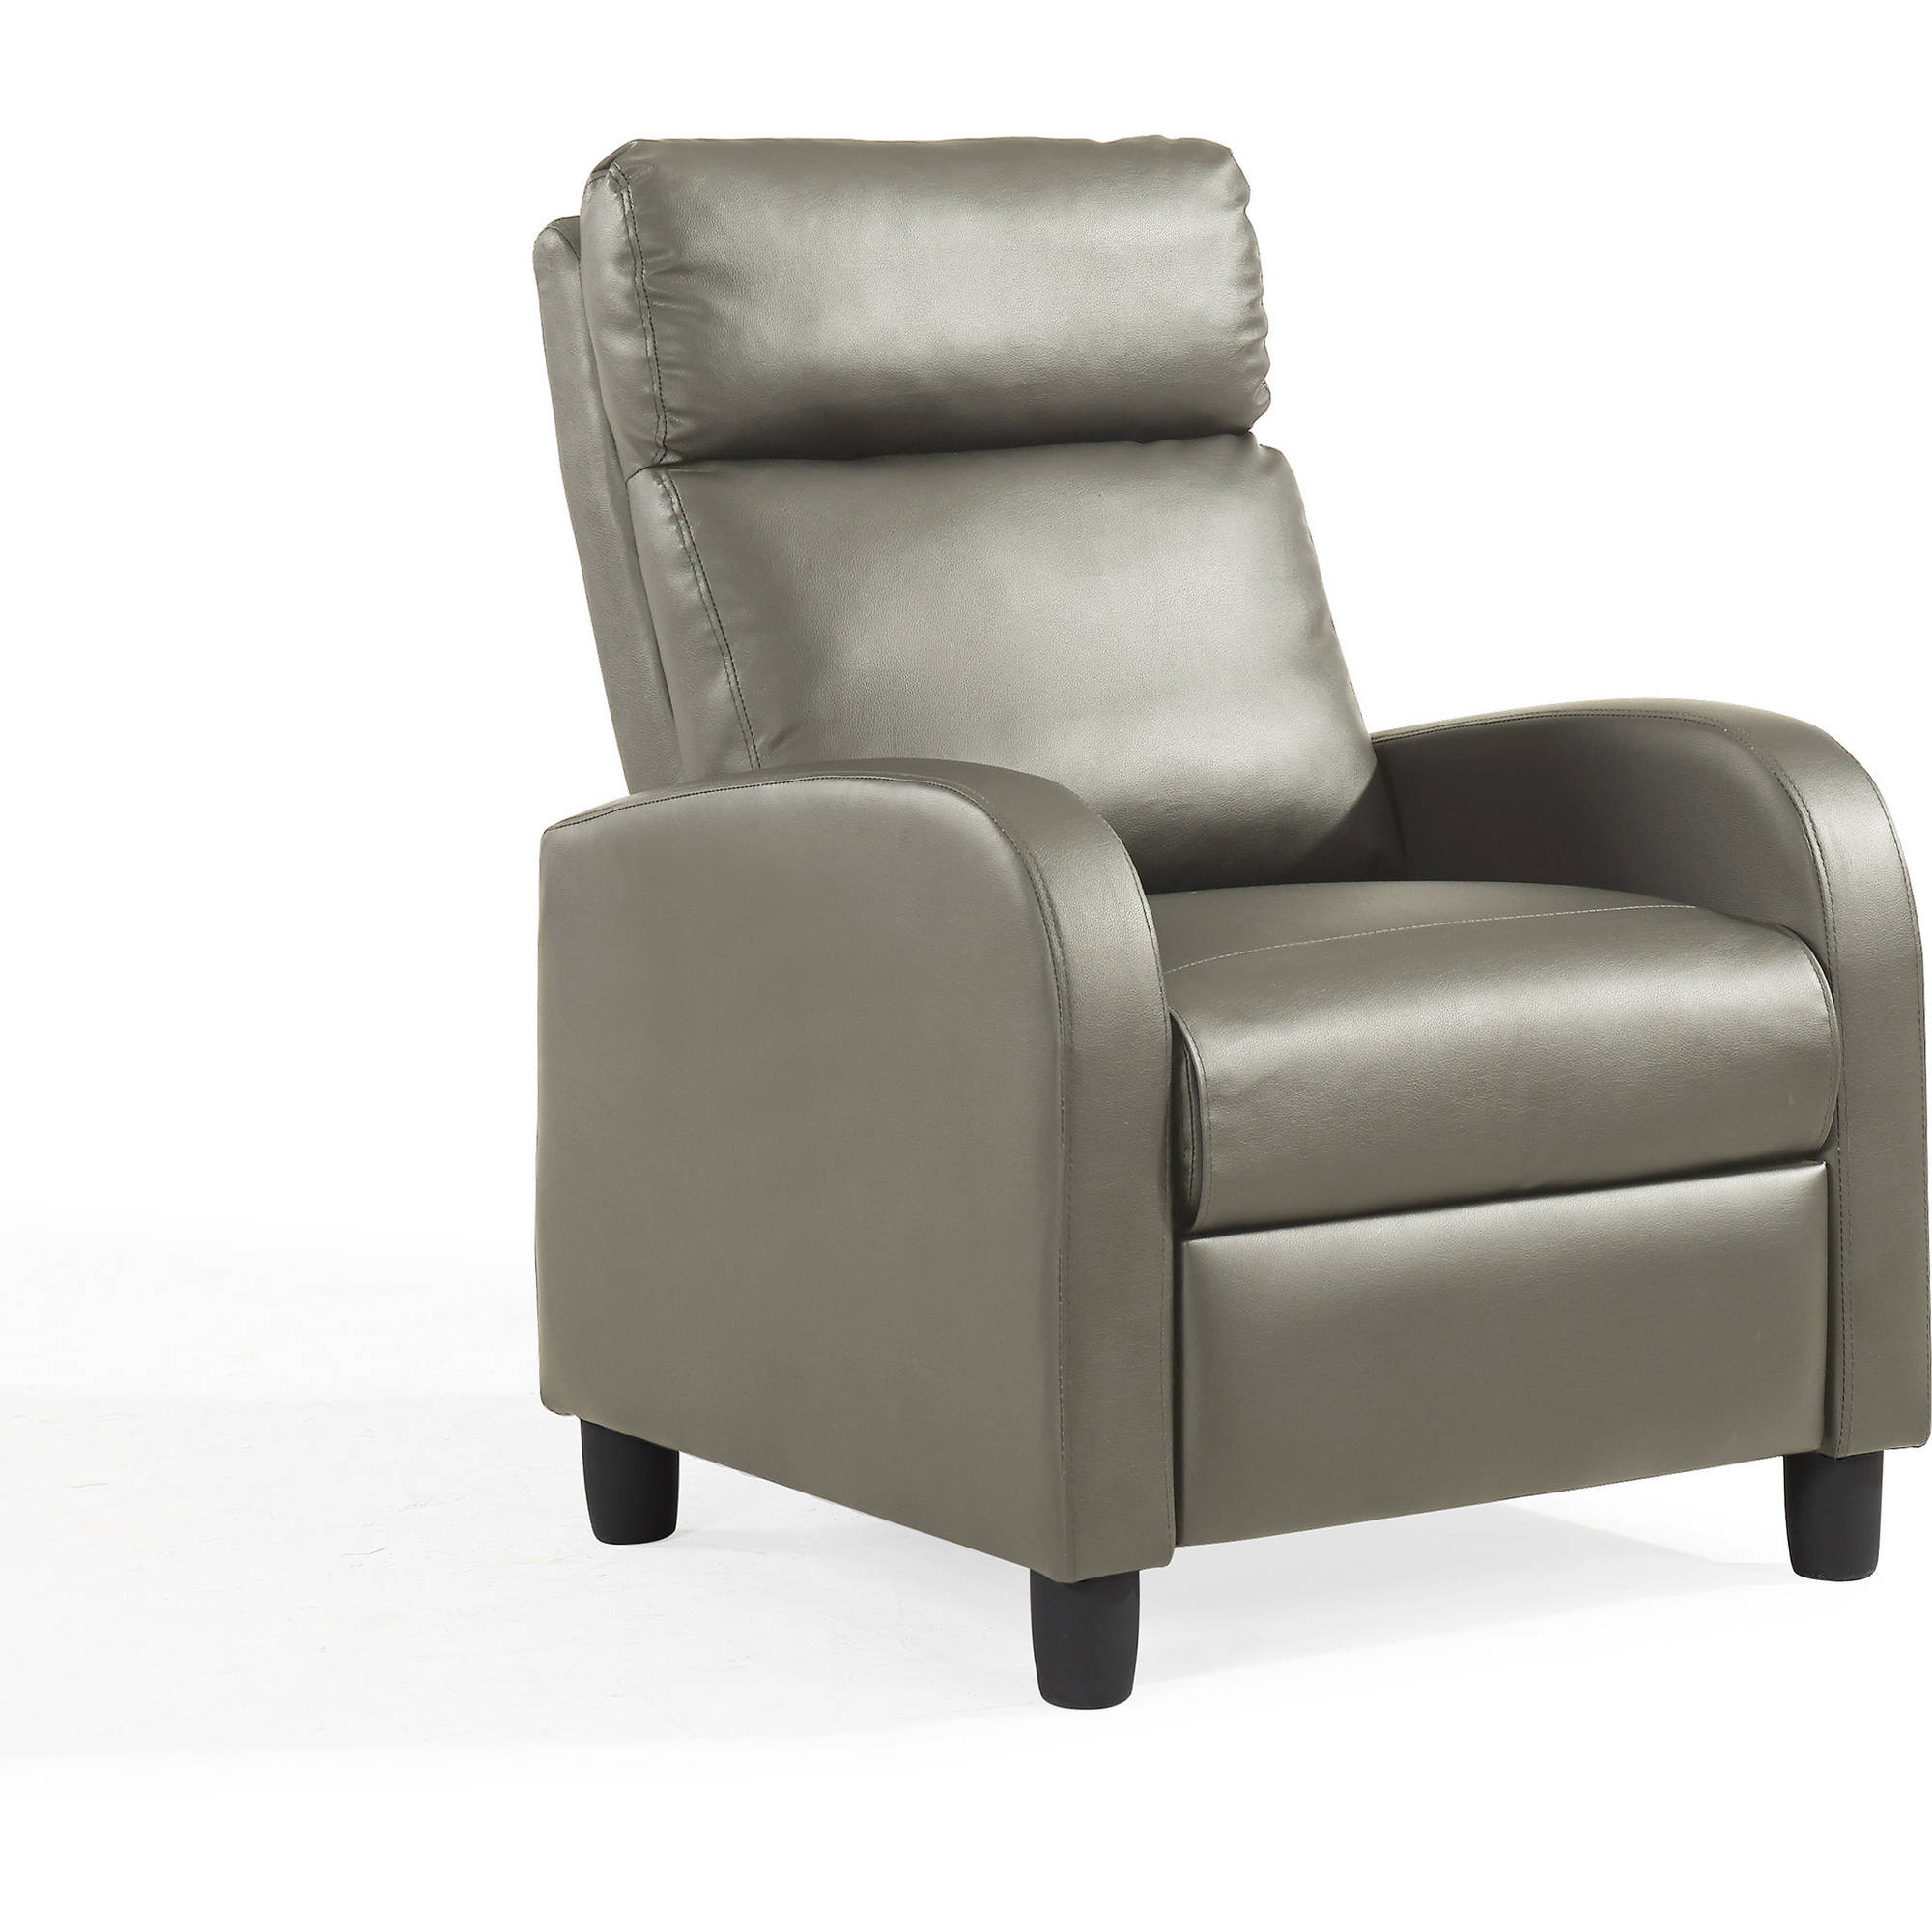 Mainstays Pushback Faux Leather Recliner, Multiple Colors